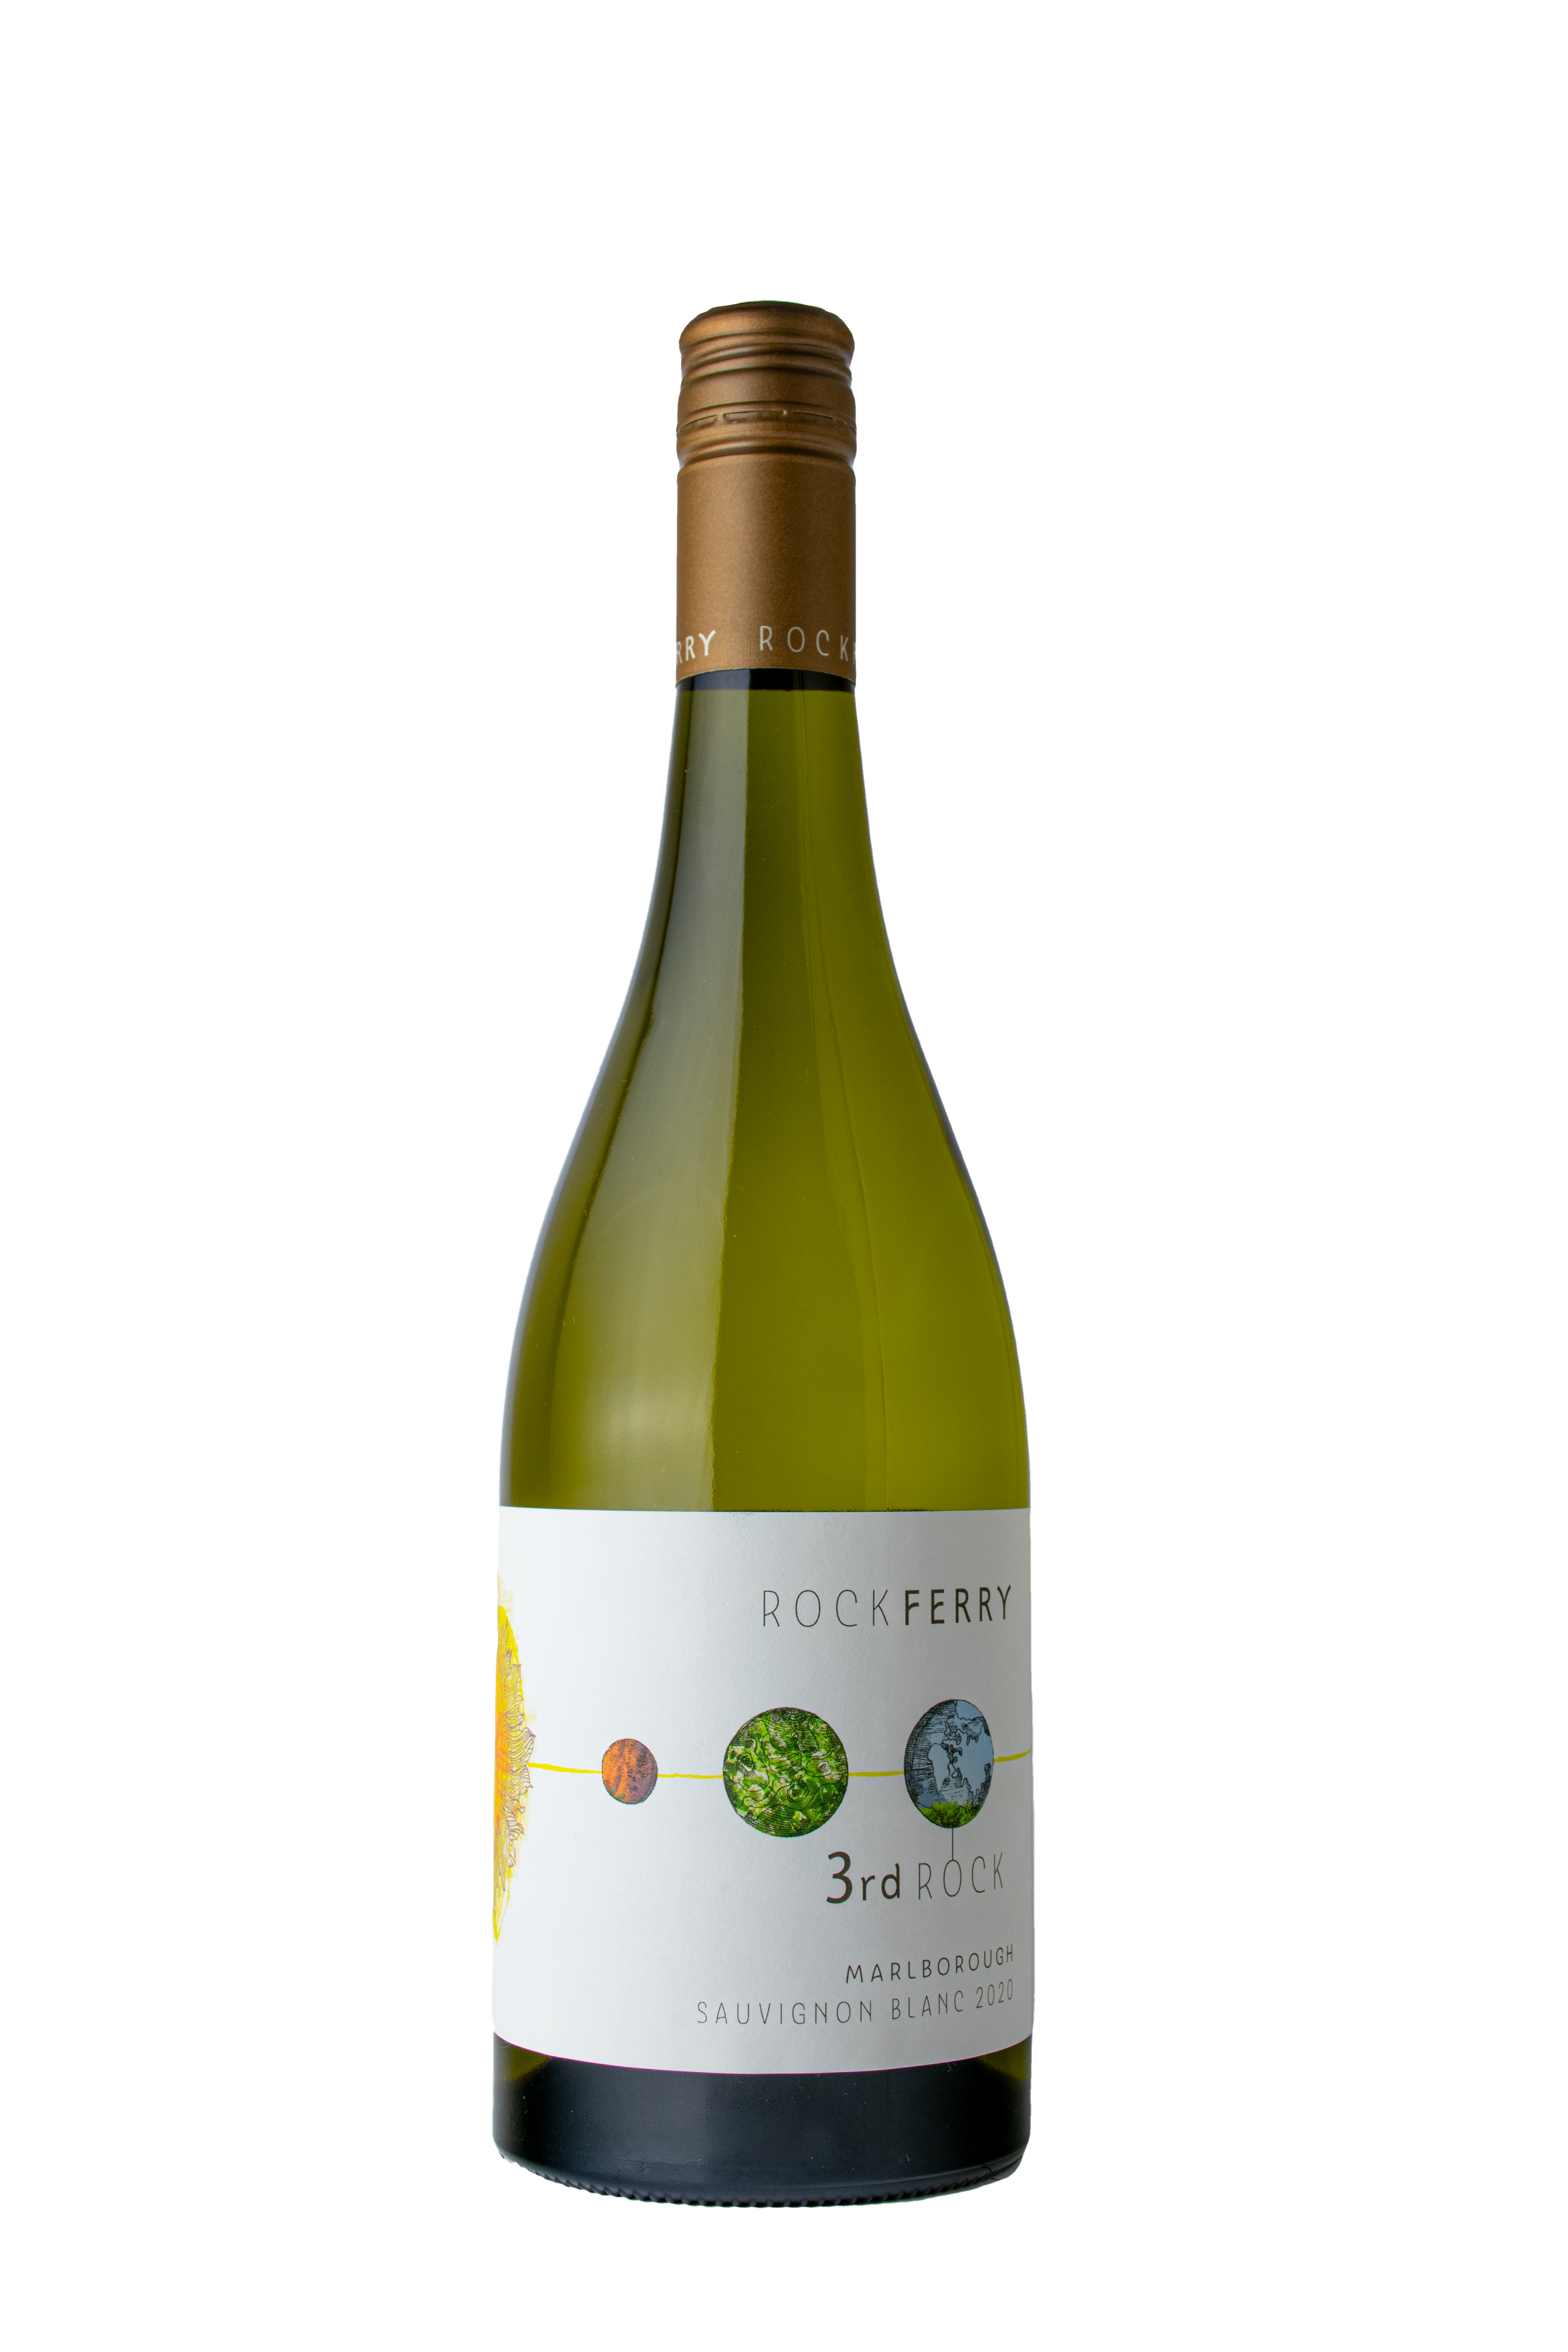 This Marlborough Sauvignon Blanc with fruit from the Wairau Valley expresses herbaceous, gooseberry aromas & ripe tropical fruit flavours.